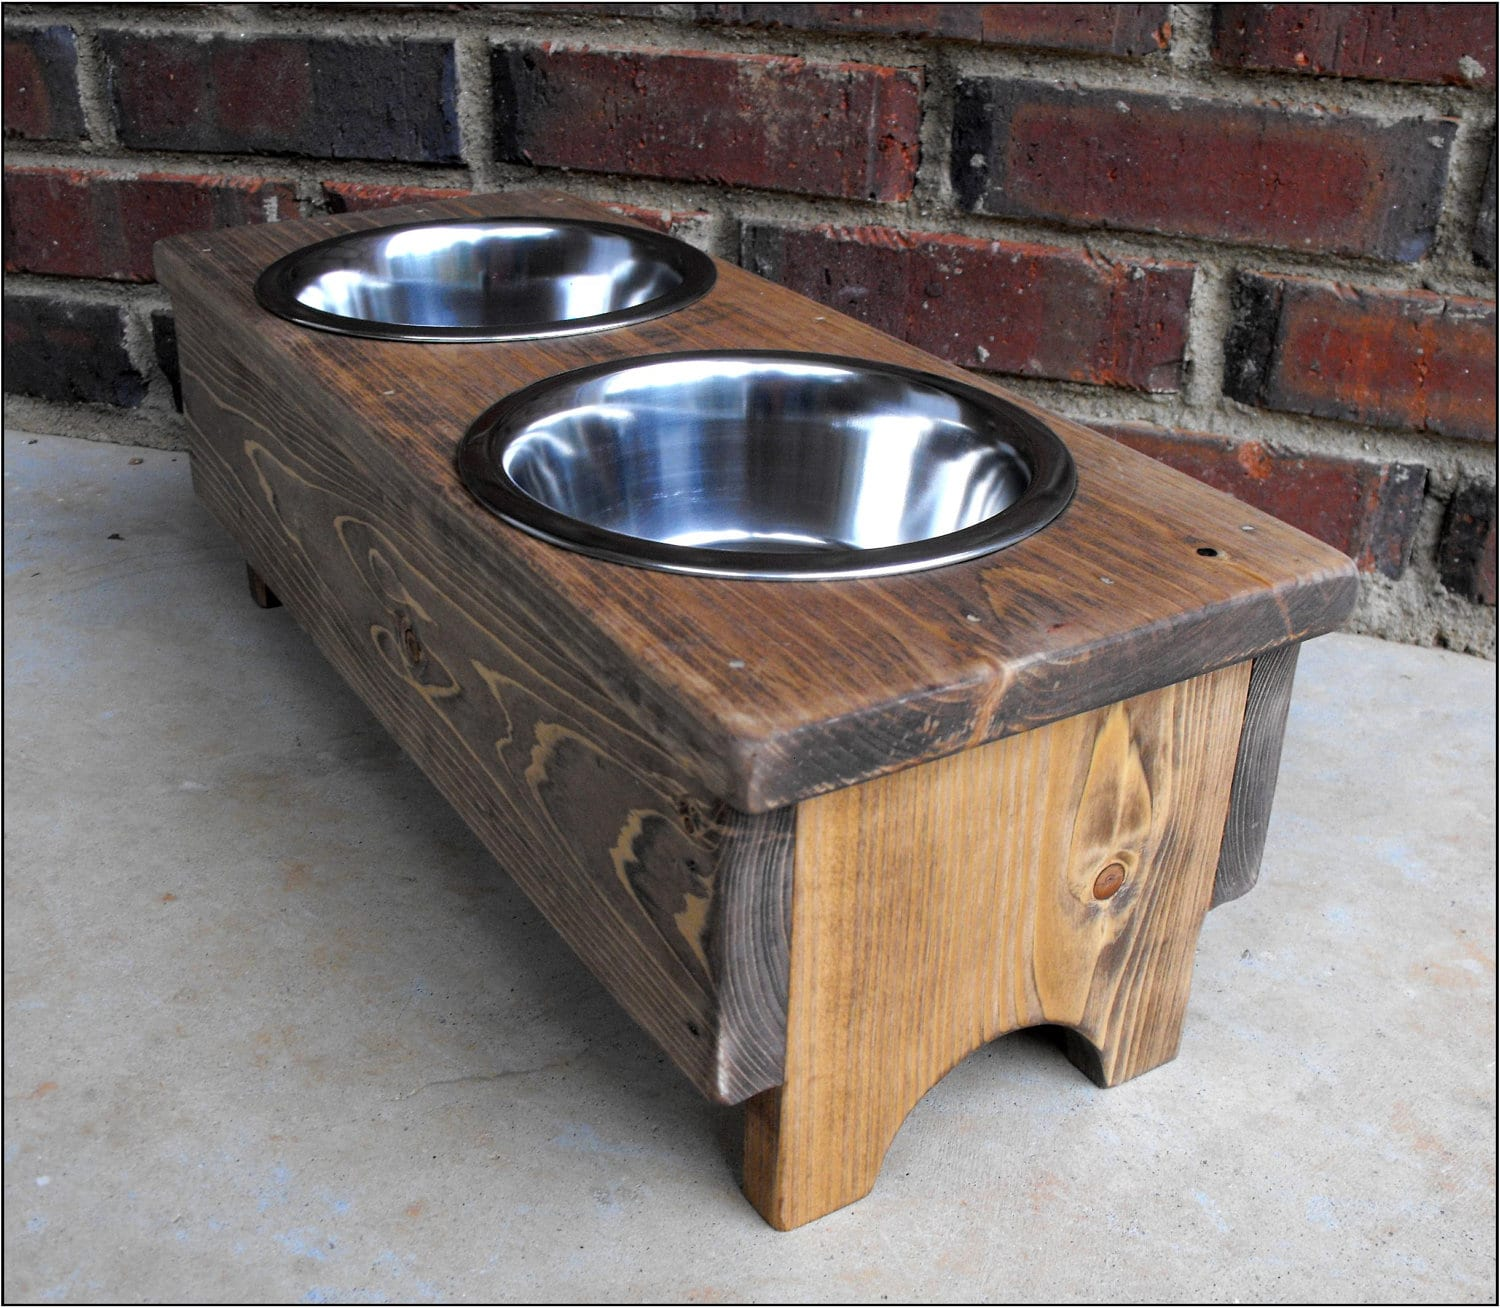 Rustic Dog or Cat Bowl holder Stained 8 inches tall 1 quart - photo#13